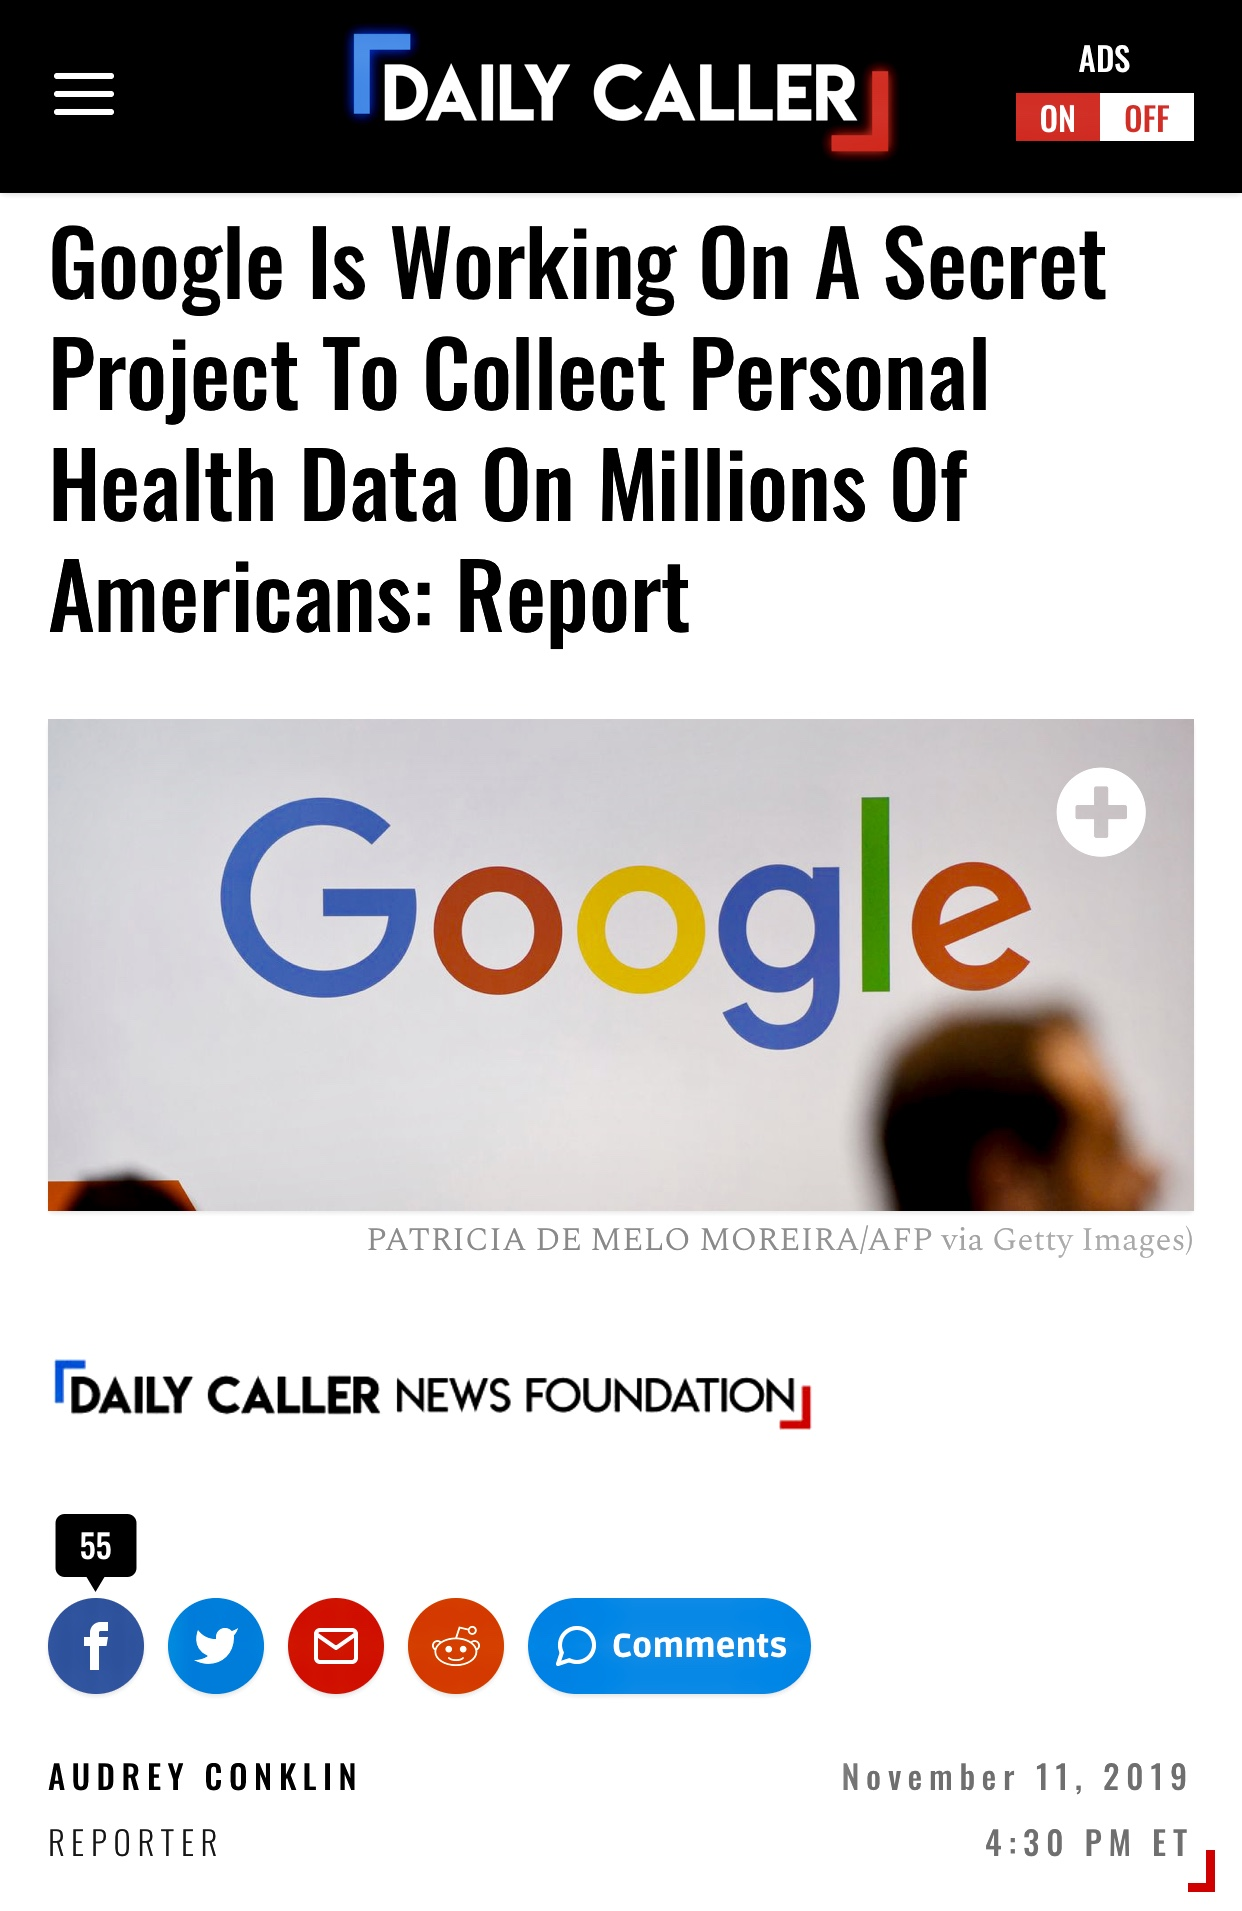 Google Working On A Secret Project To Collect Personal Health Data On Millions Of Americans